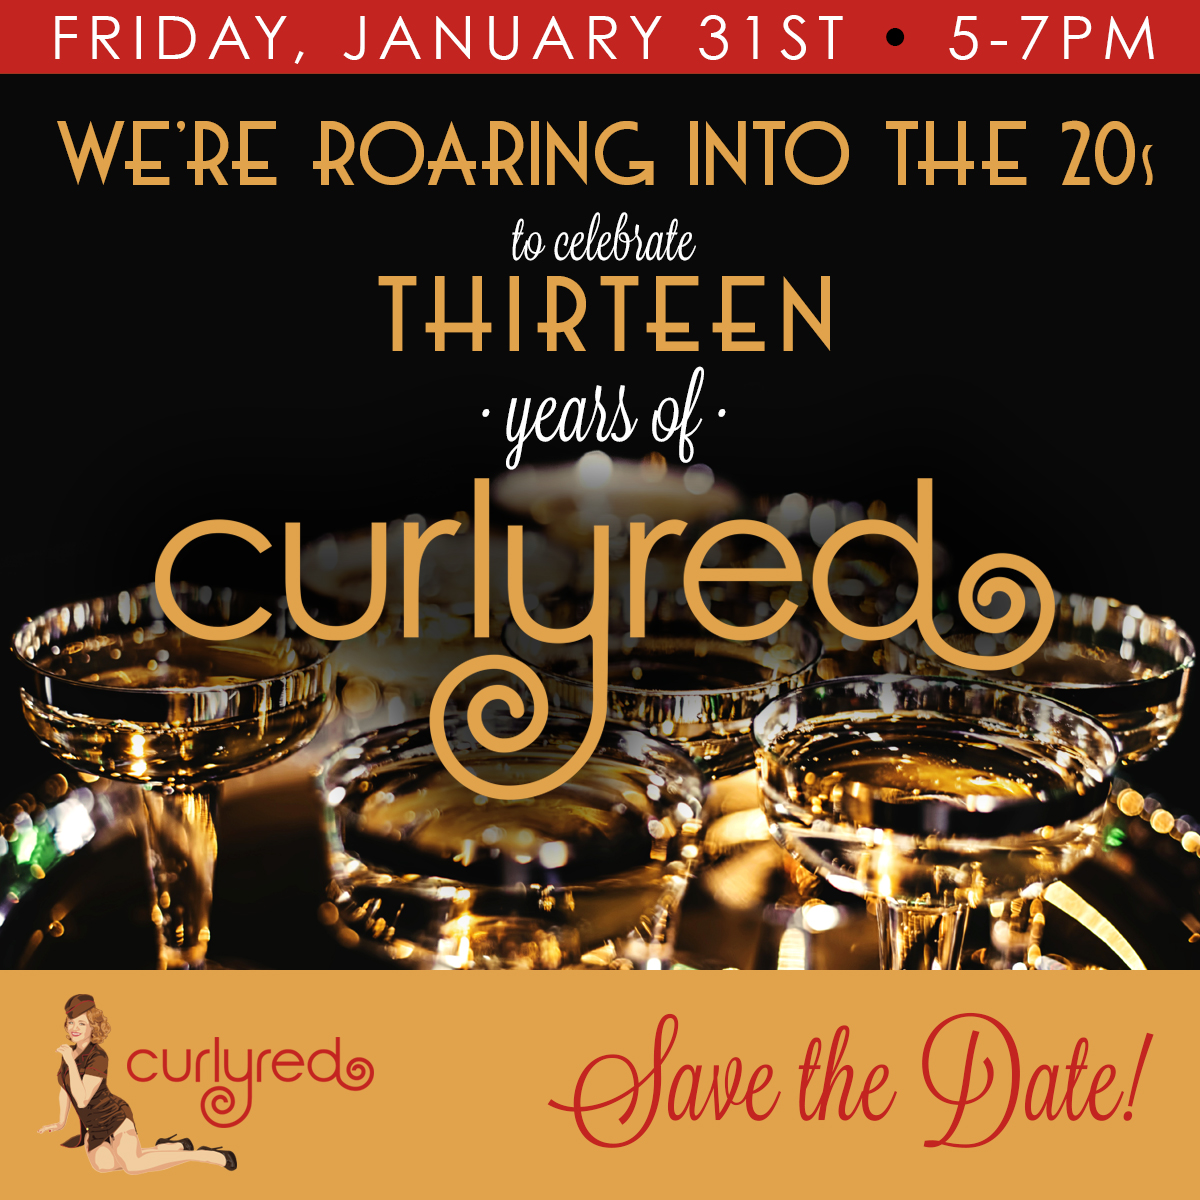 CurlyRed Save the Date